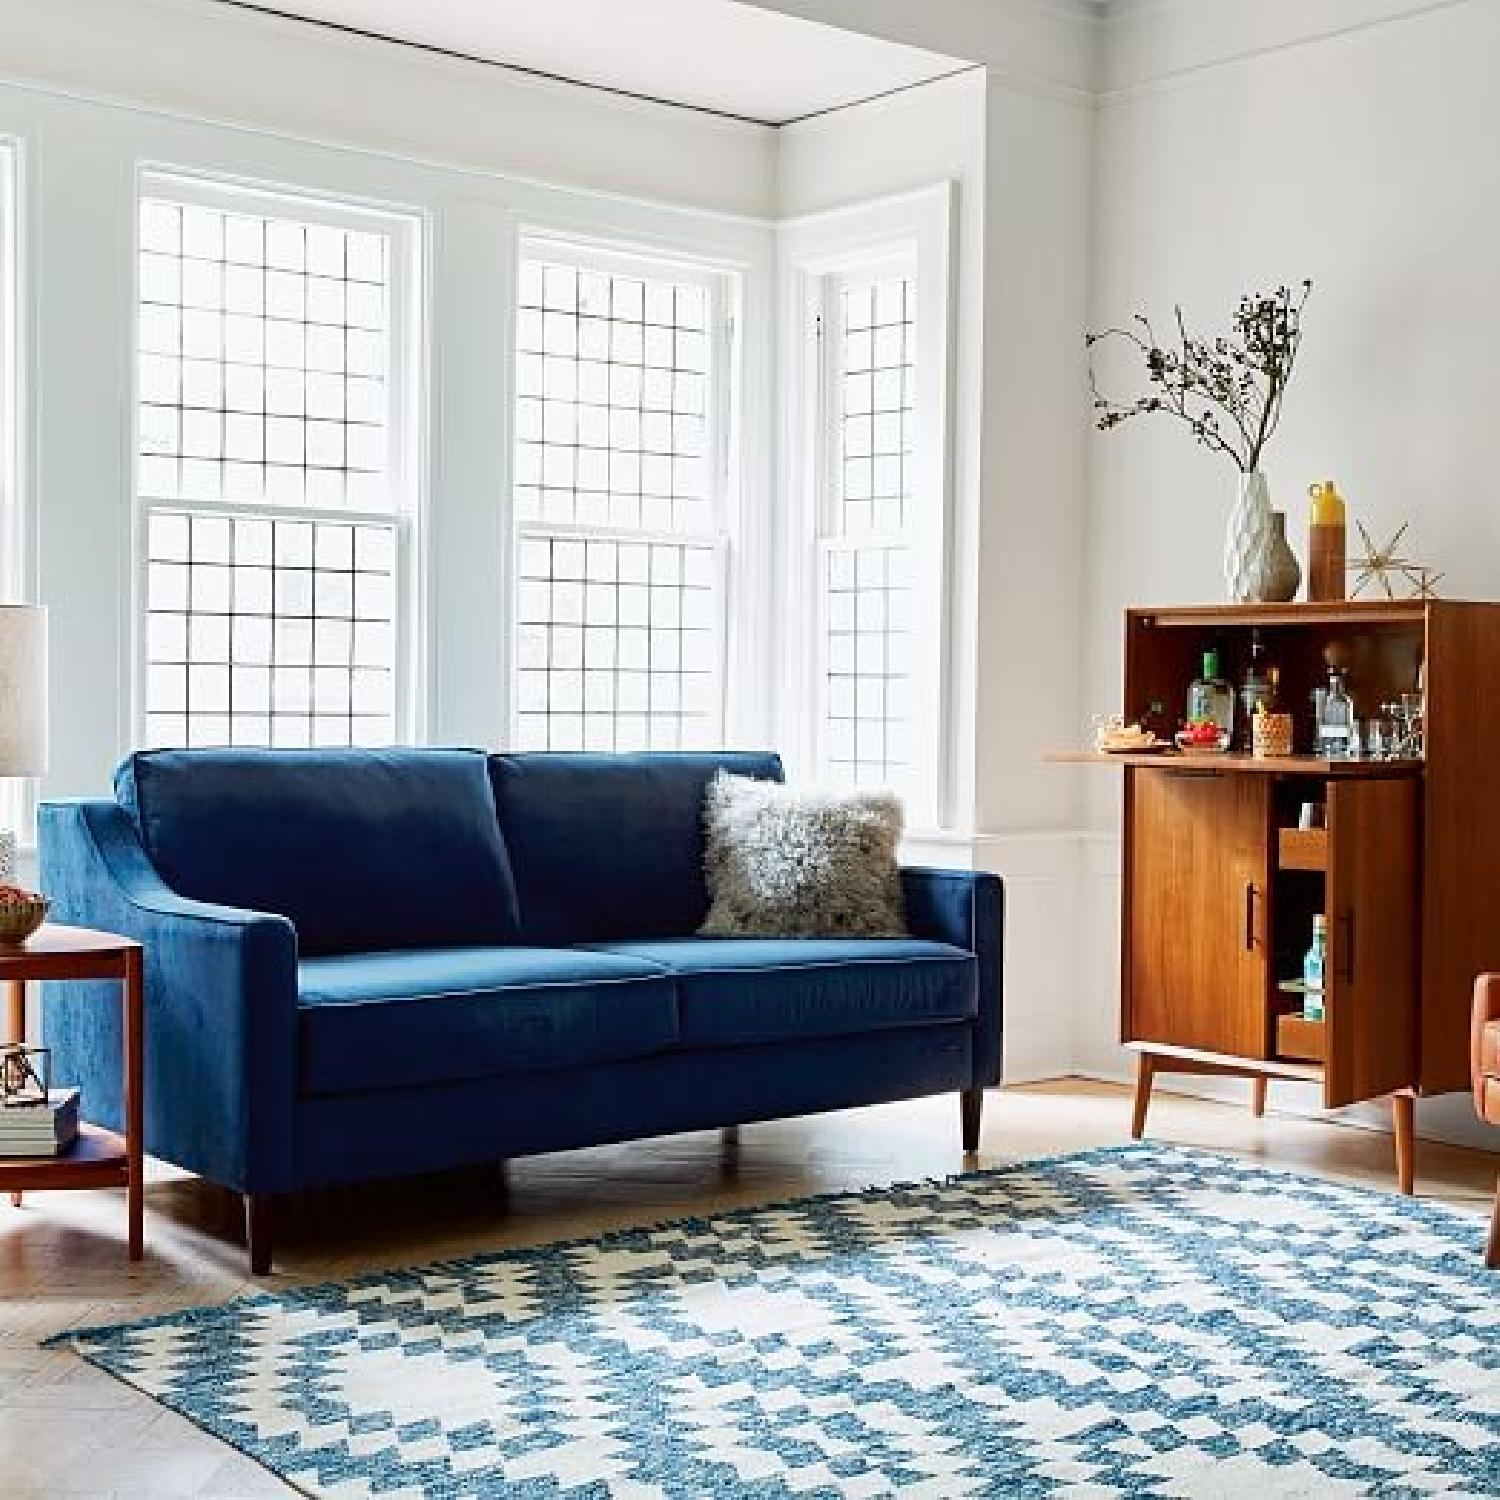 West elm paidge sofa w legs in ink blue performance aptdeco for West elm living room ideas